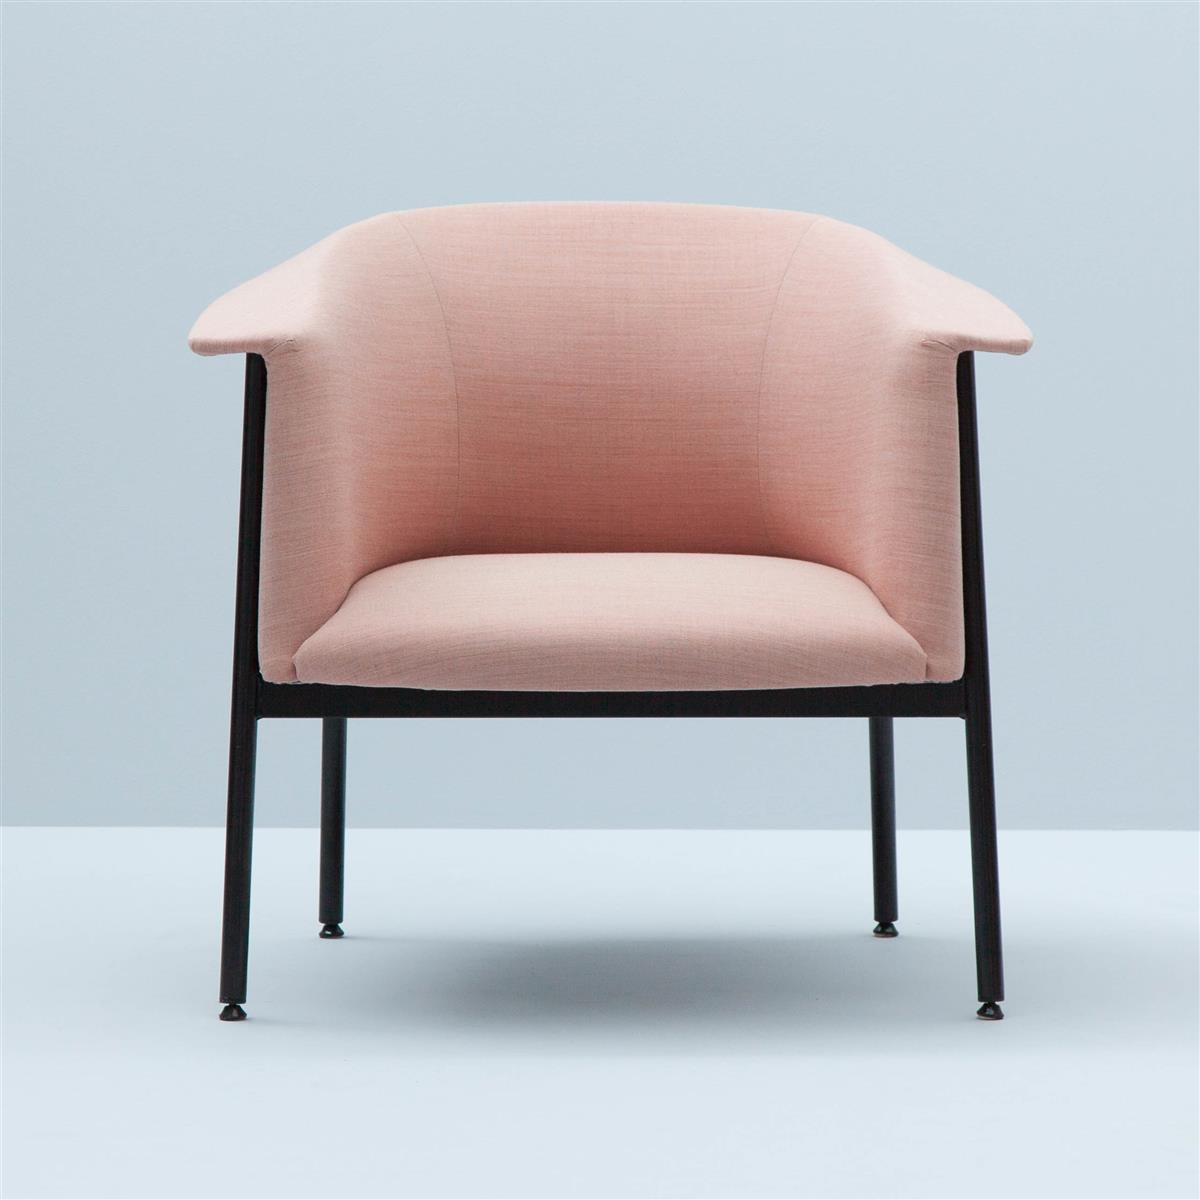 Kavai Lounge Chair. Kvadrat Remix 612 tekstil.